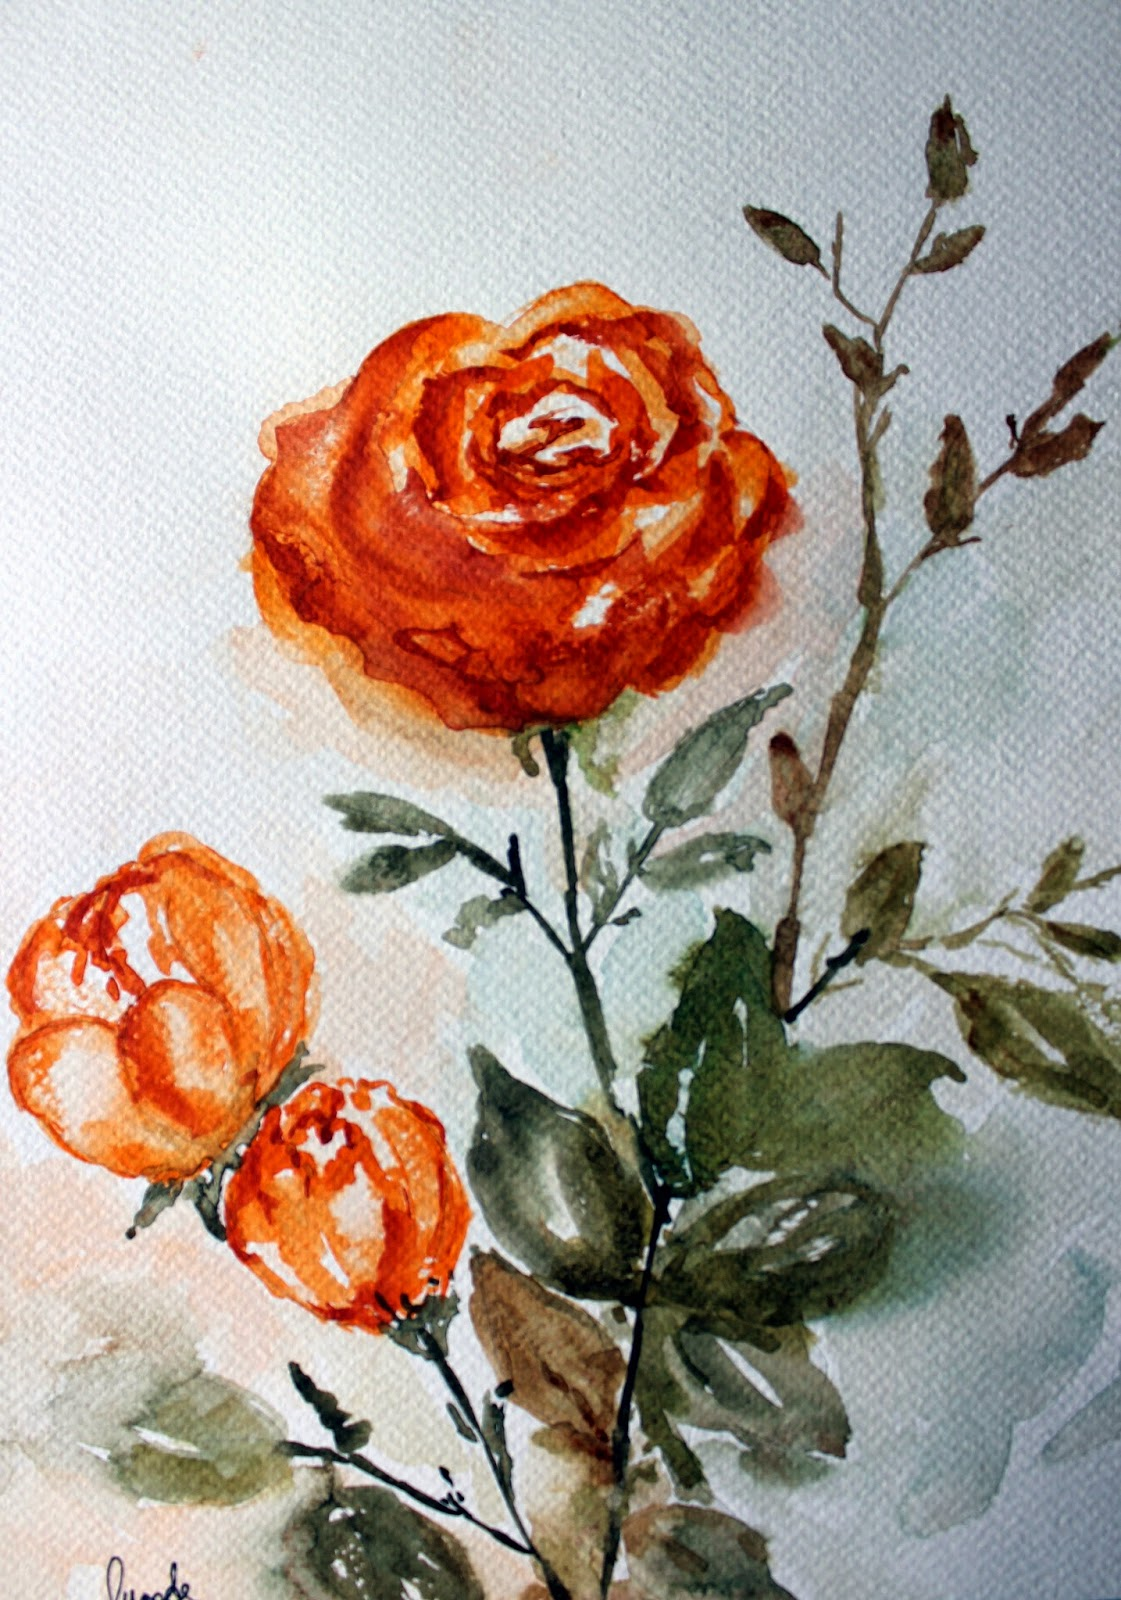 rose, orange, buds, art, painting, blooming, valentine, garden, nature